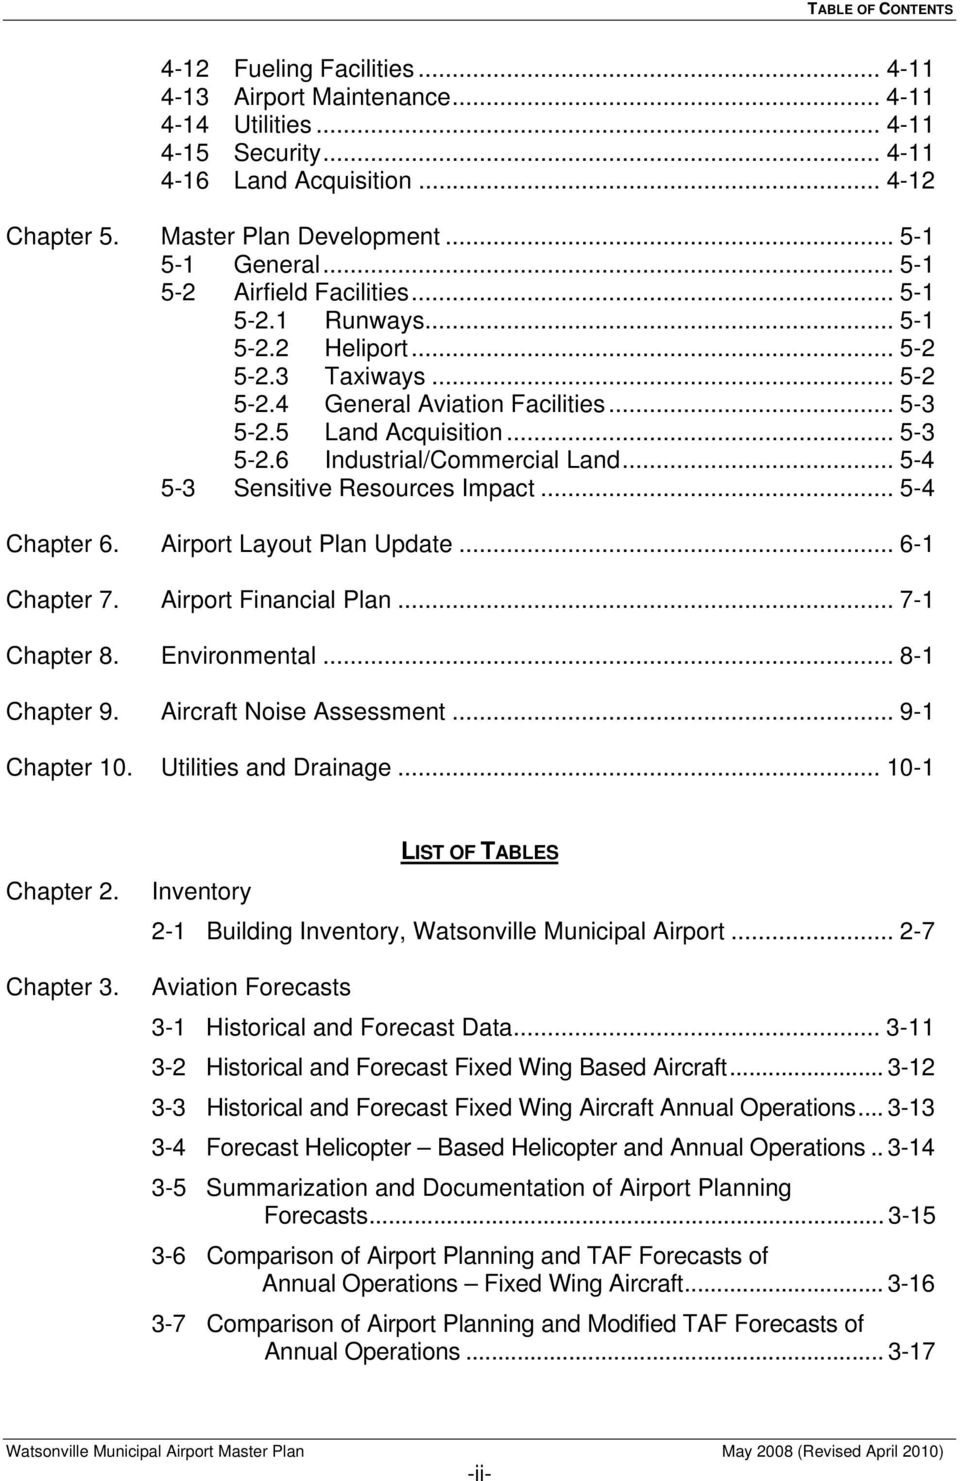 .. 5-4 5-3 Sensitive Resources Impact... 5-4 Chapter 6. Airport Layout Plan Update... 6-1 Chapter 7. Airport Financial Plan... 7-1 Chapter 8. Environmental... 8-1 Chapter 9. Aircraft Noise Assessment.